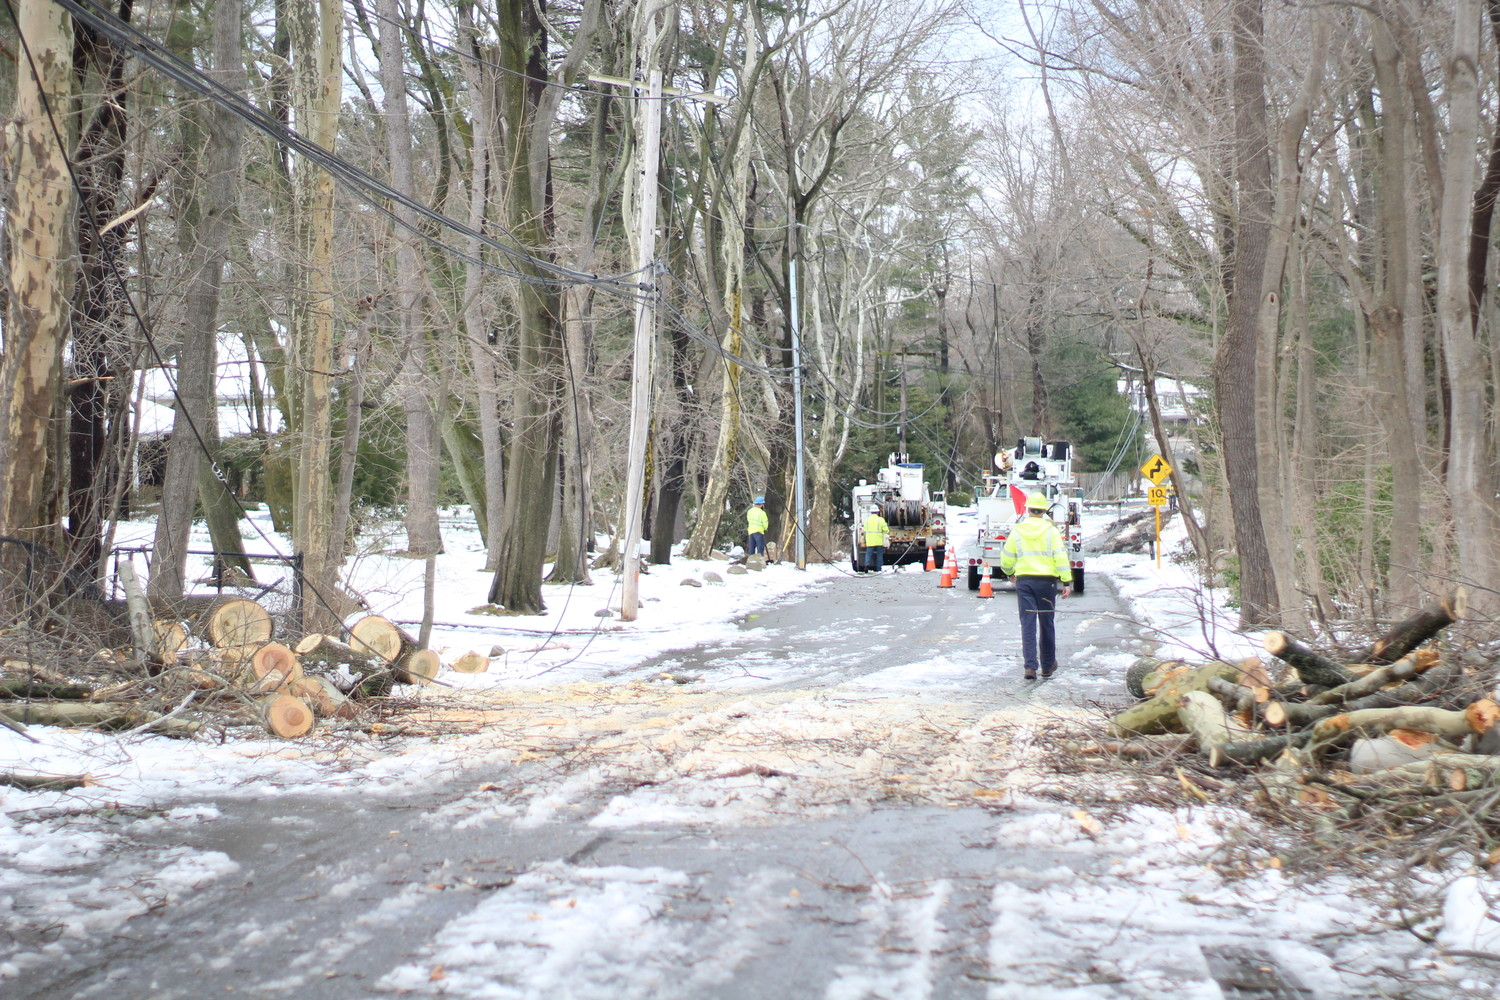 On Brookvale Lane in Glen Head, several downed trees and split poles knocked out power for the block. Clearing the road and rewiring power in the area was one of the thousands of jobs PSEG Long Island did after Winter Storm Quinn.